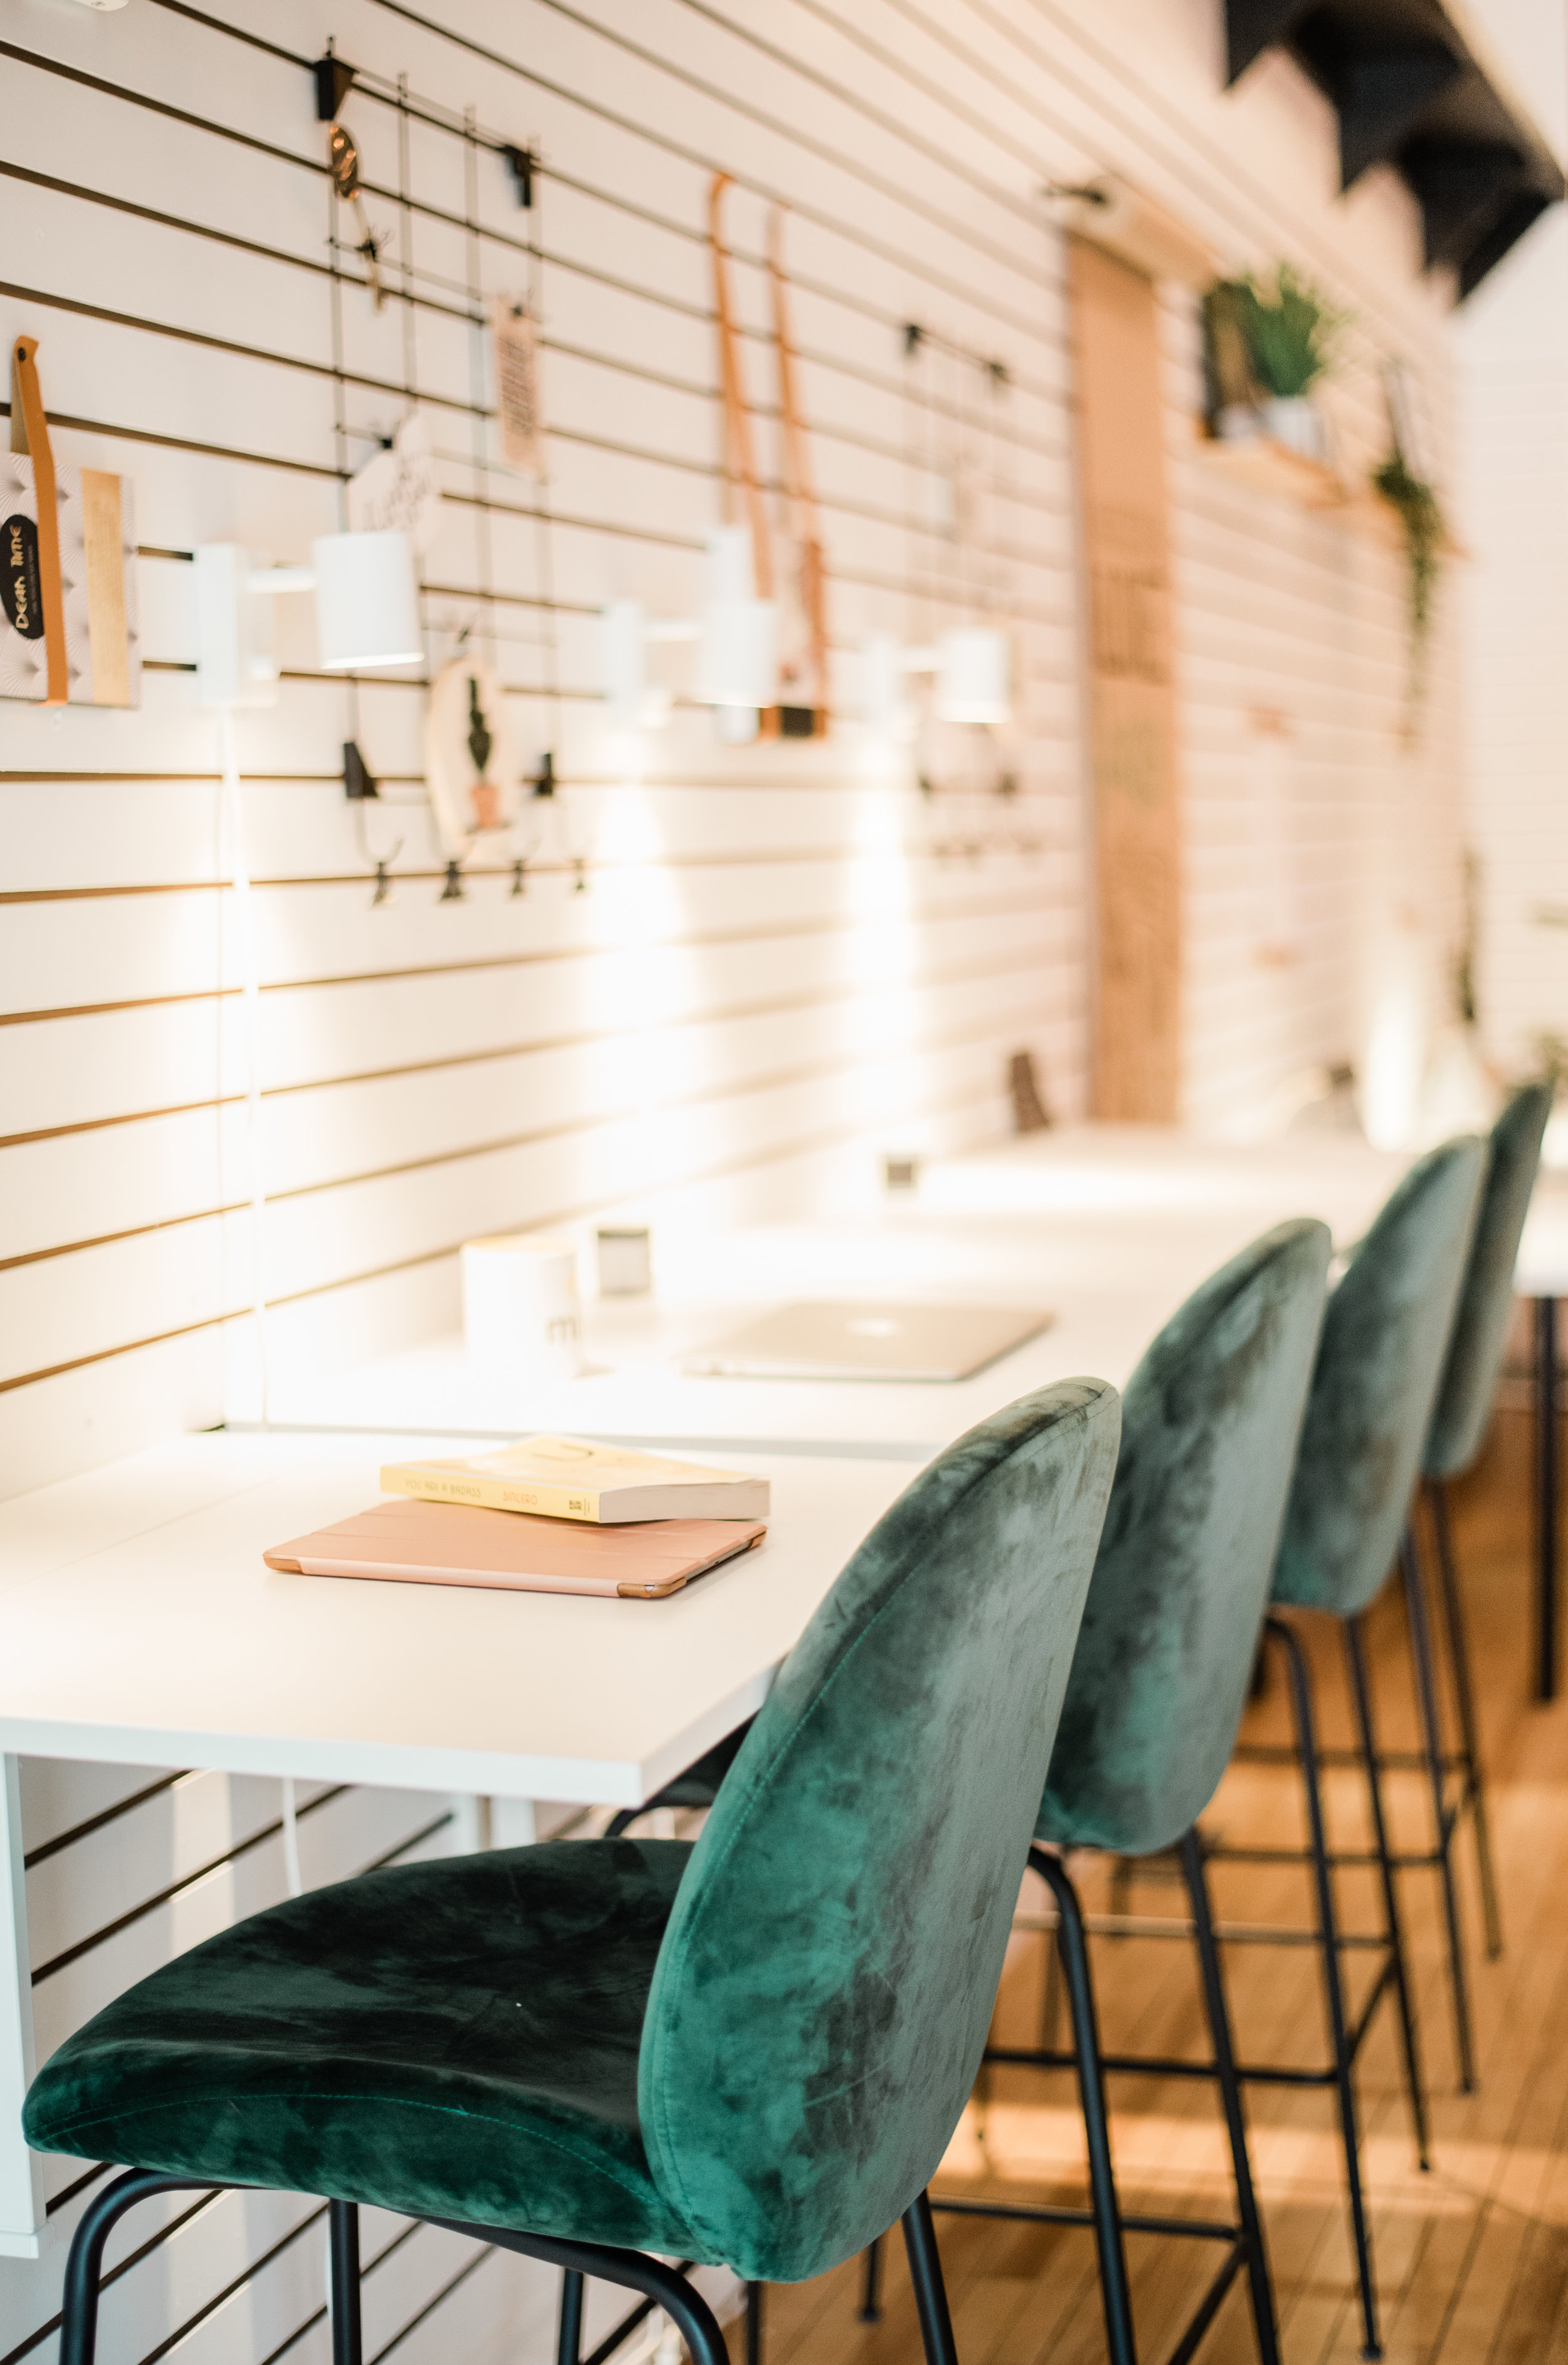 DROP-IN COMMUNAL DAY PASS [$15.00/day]   - Access to communal work space (laptop bar or communal table) - Wifi and printing privileges - Access to exclusive business member events - Coffee bar!